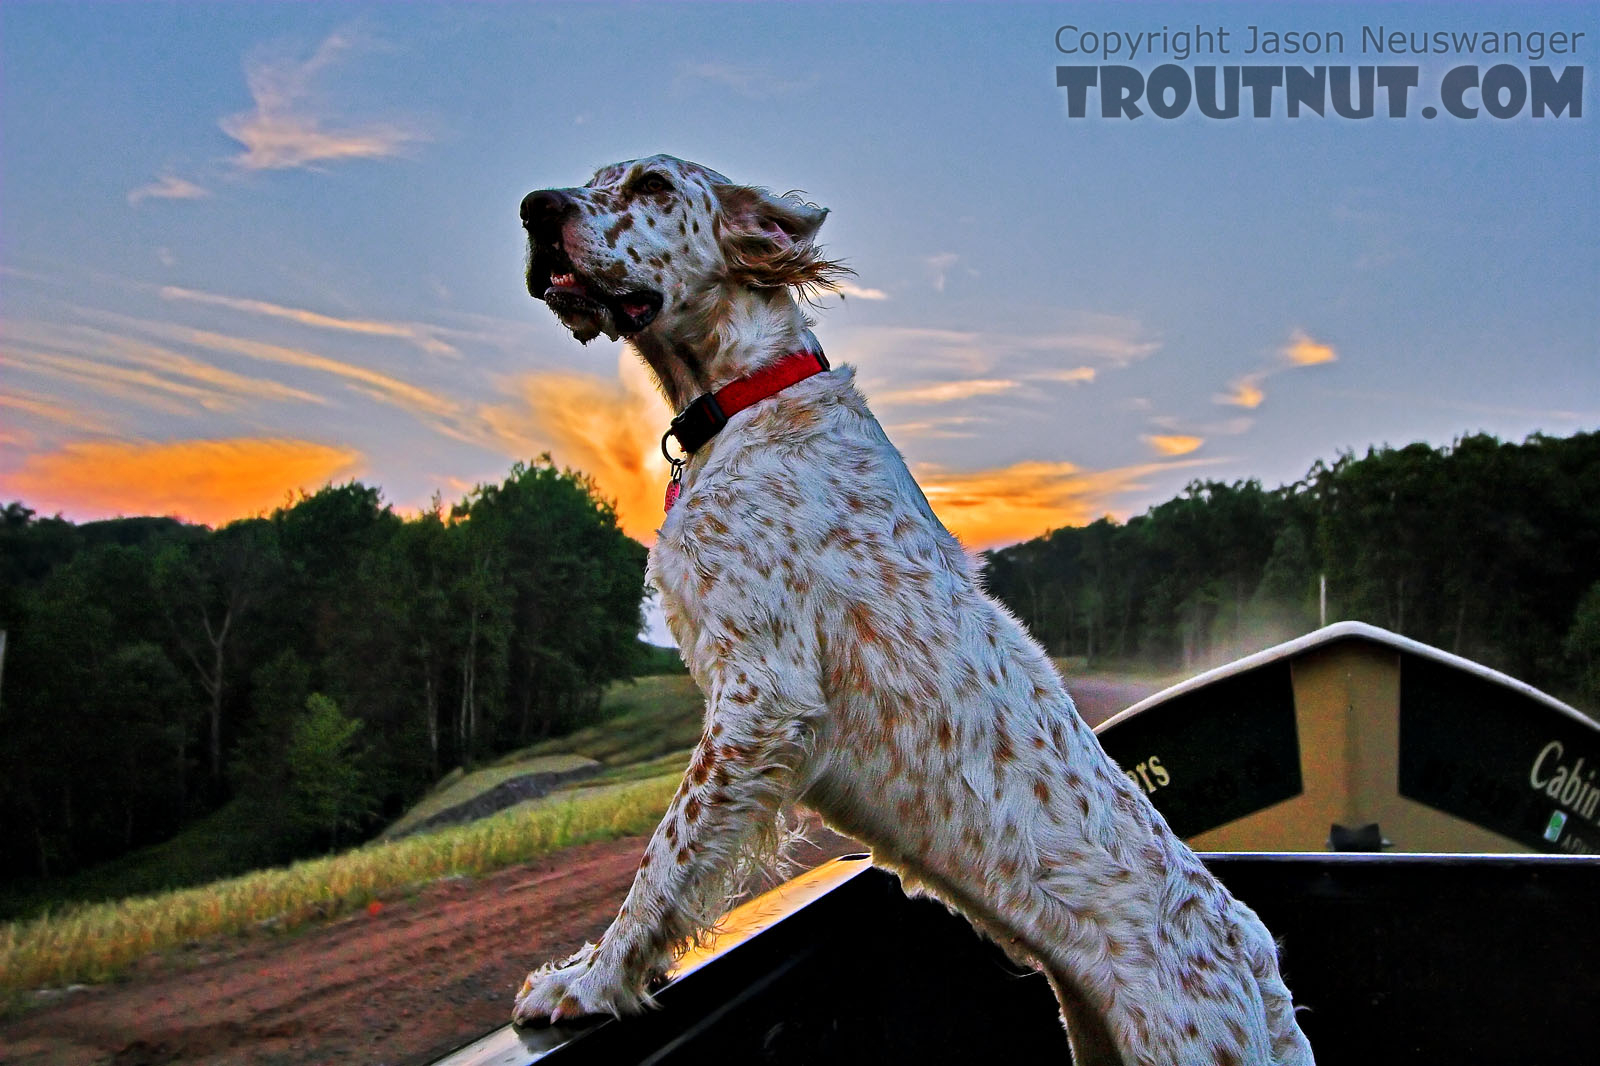 This is my friend Brad's English Setter named Penny, framed against a sunset during the short drive between landings after a float trip. From the Namekagon River in Wisconsin.